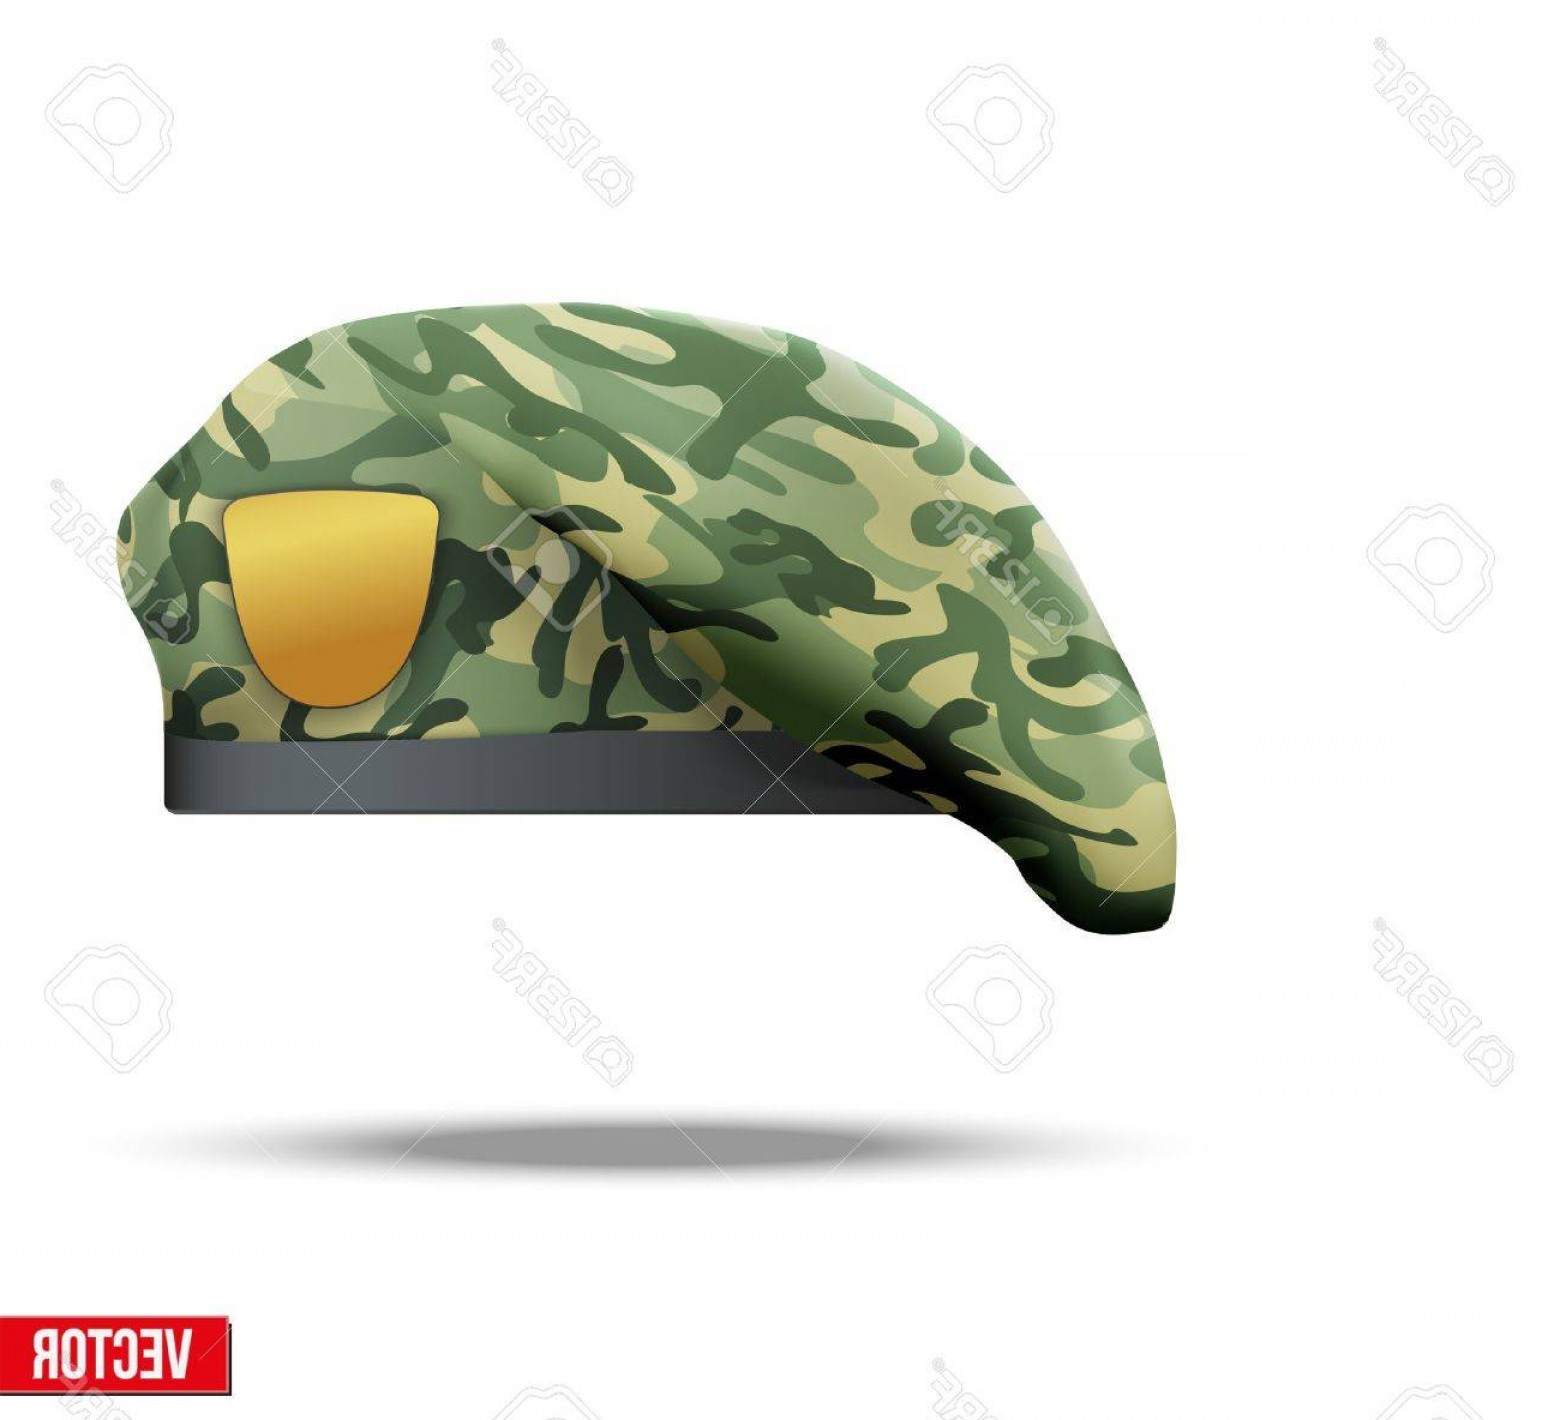 Vector Special Forces Helmet: Photostock Vector Military Beret With Camouflage Texture Of Army Special Forces Vector Illustration Isolated On White